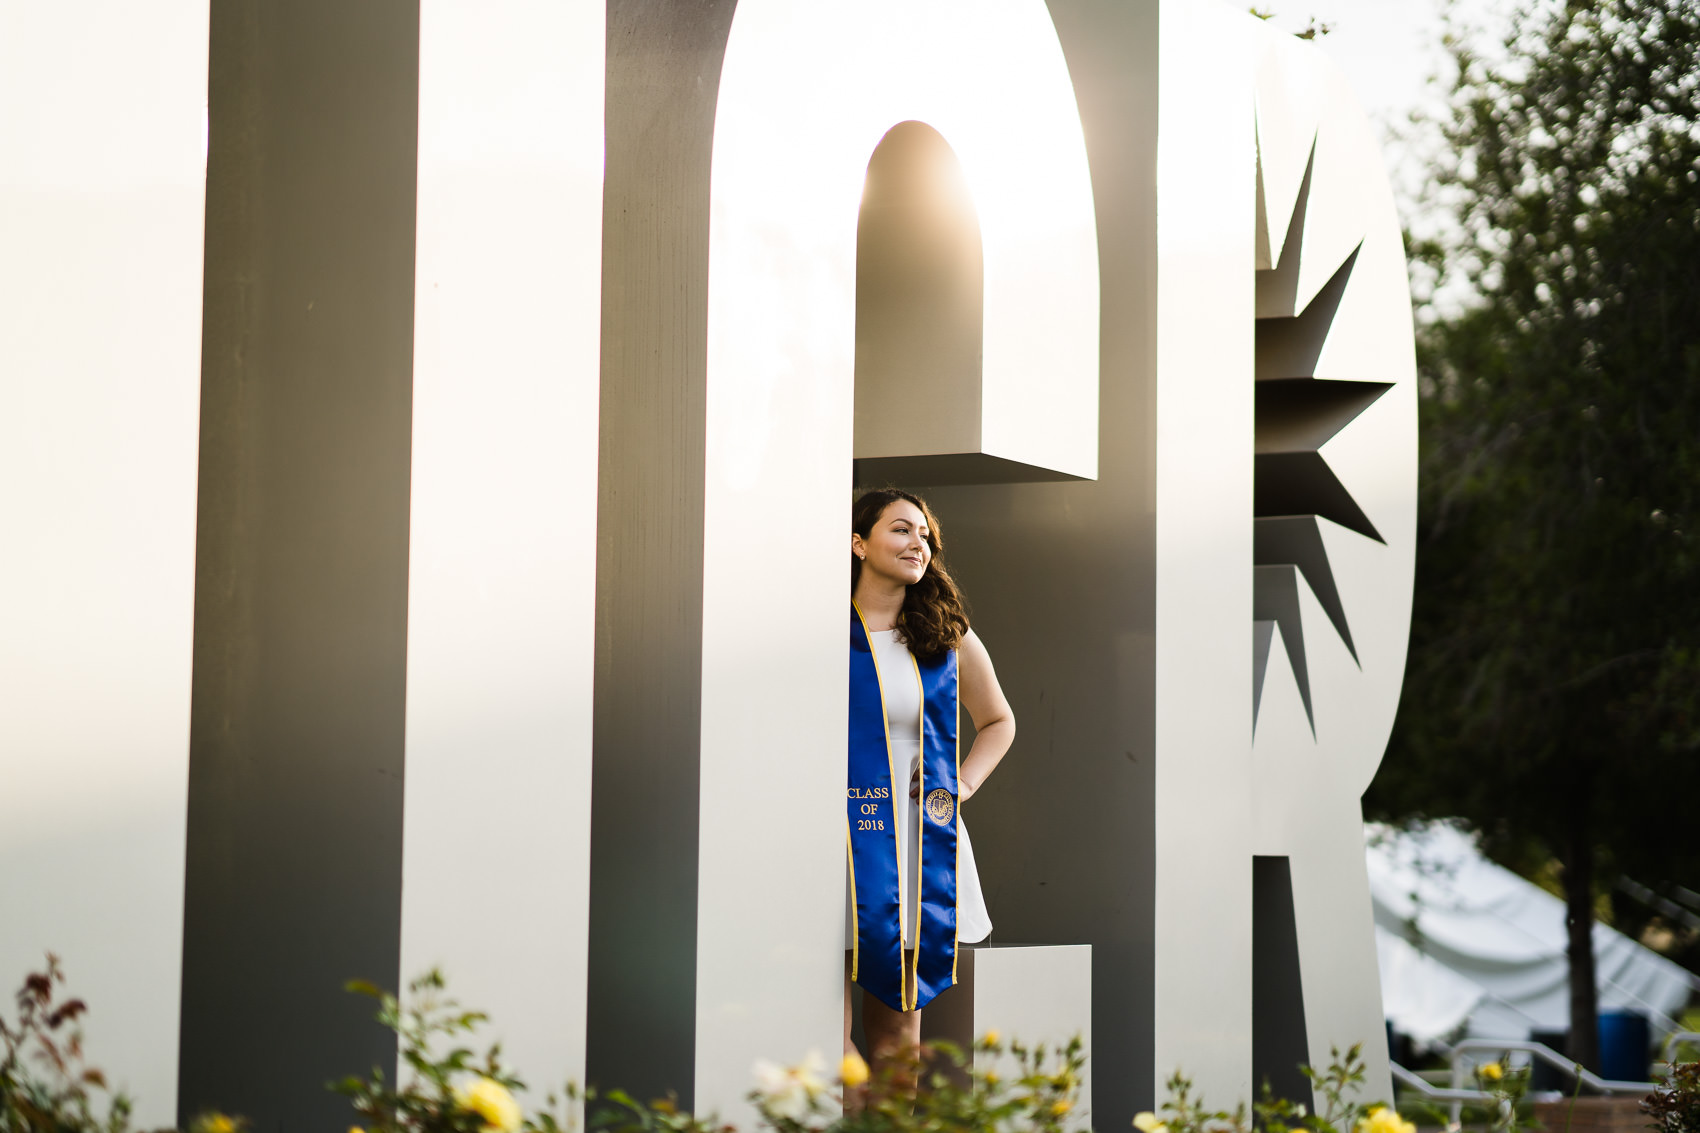 portrait of a girl in graduation apparel looking off into the distance standing in the uc riverside sign